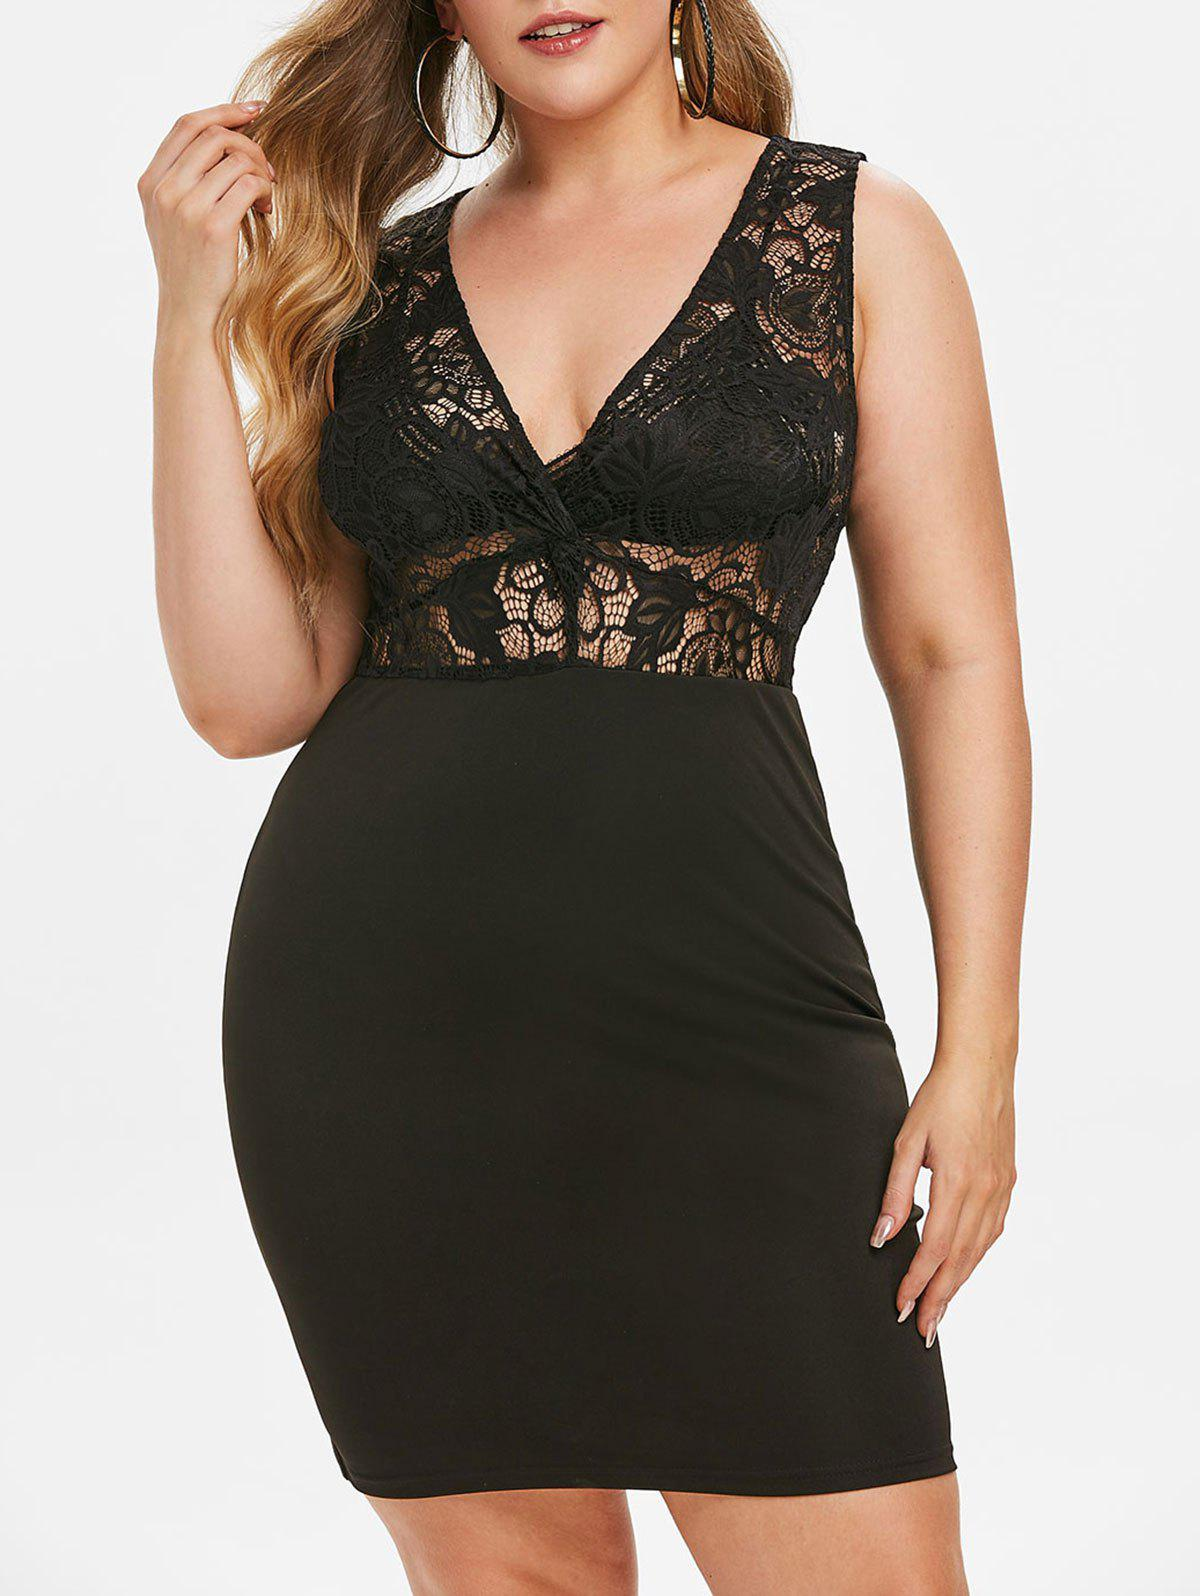 New Plus Size Plunge Lace Insert Bodycon Party Dress